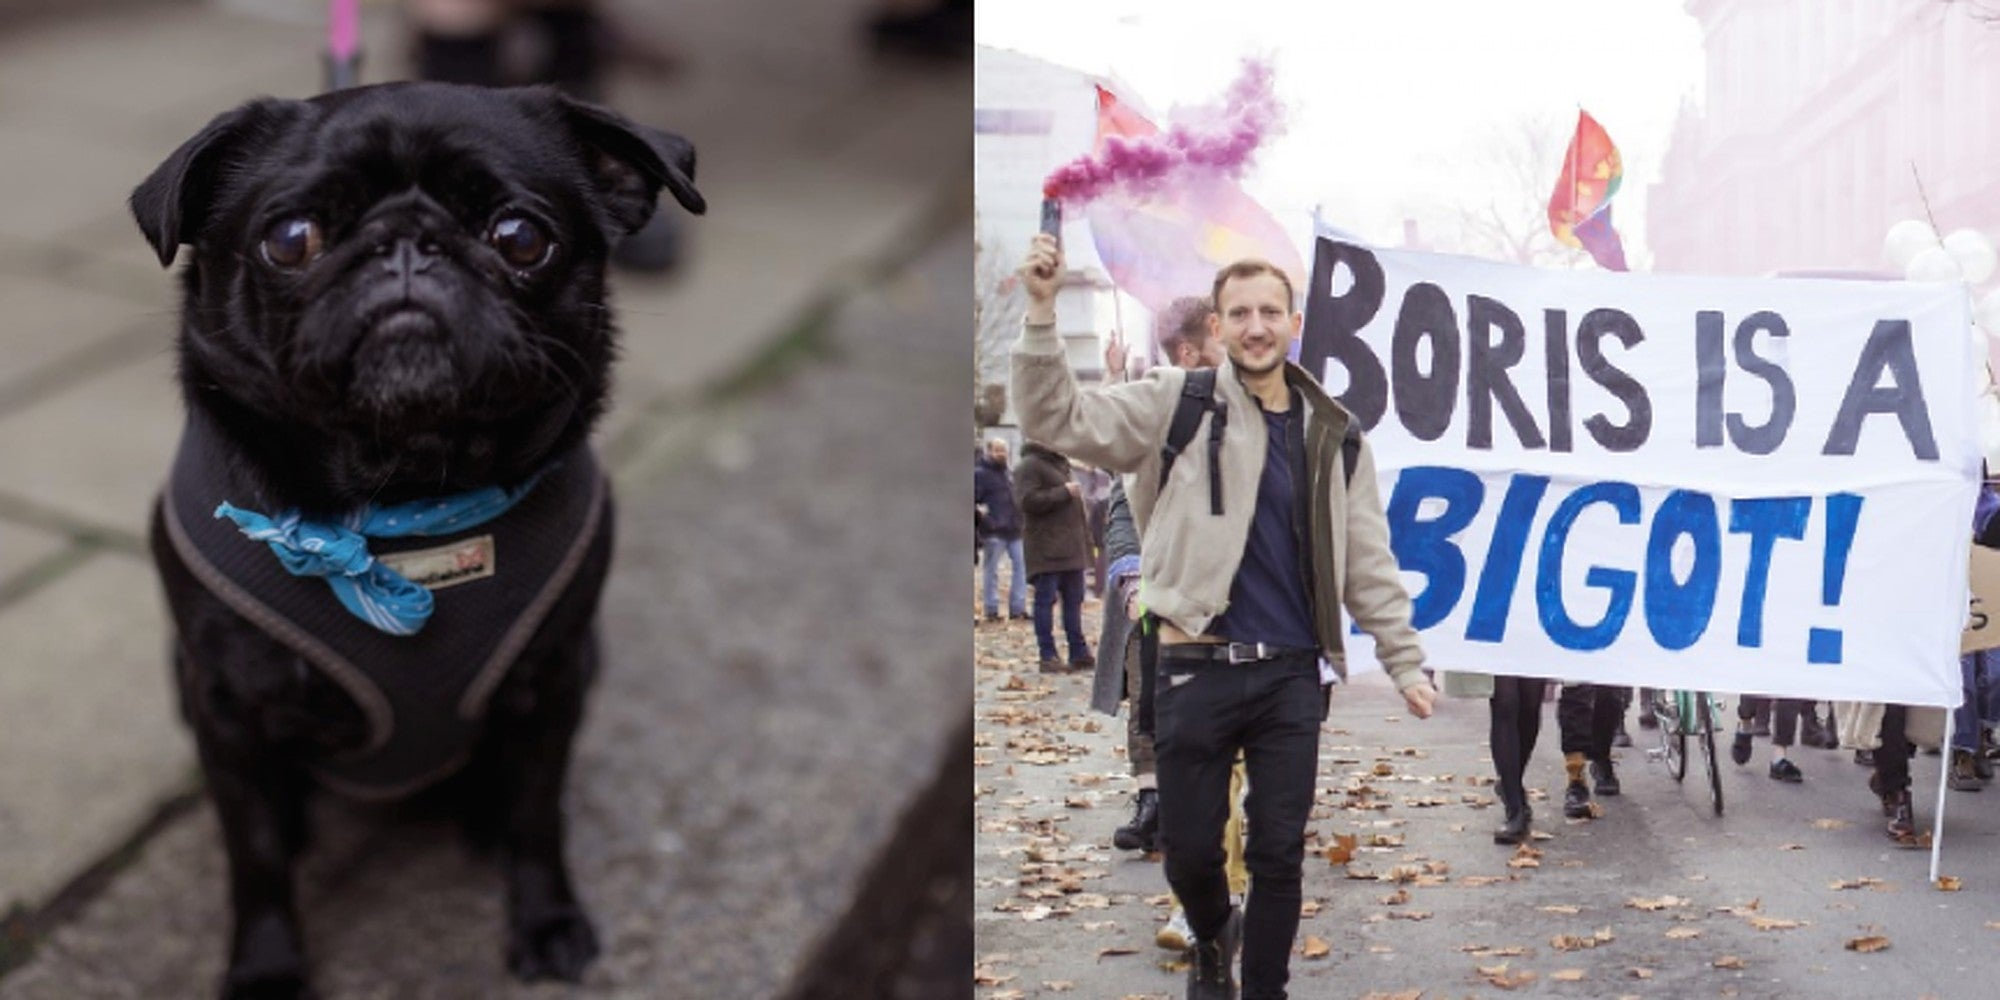 LGBT+ activists stage 'wedding' between three men and a dog outside Tory HQ to protest Boris Johnson's 'homophobic' comments